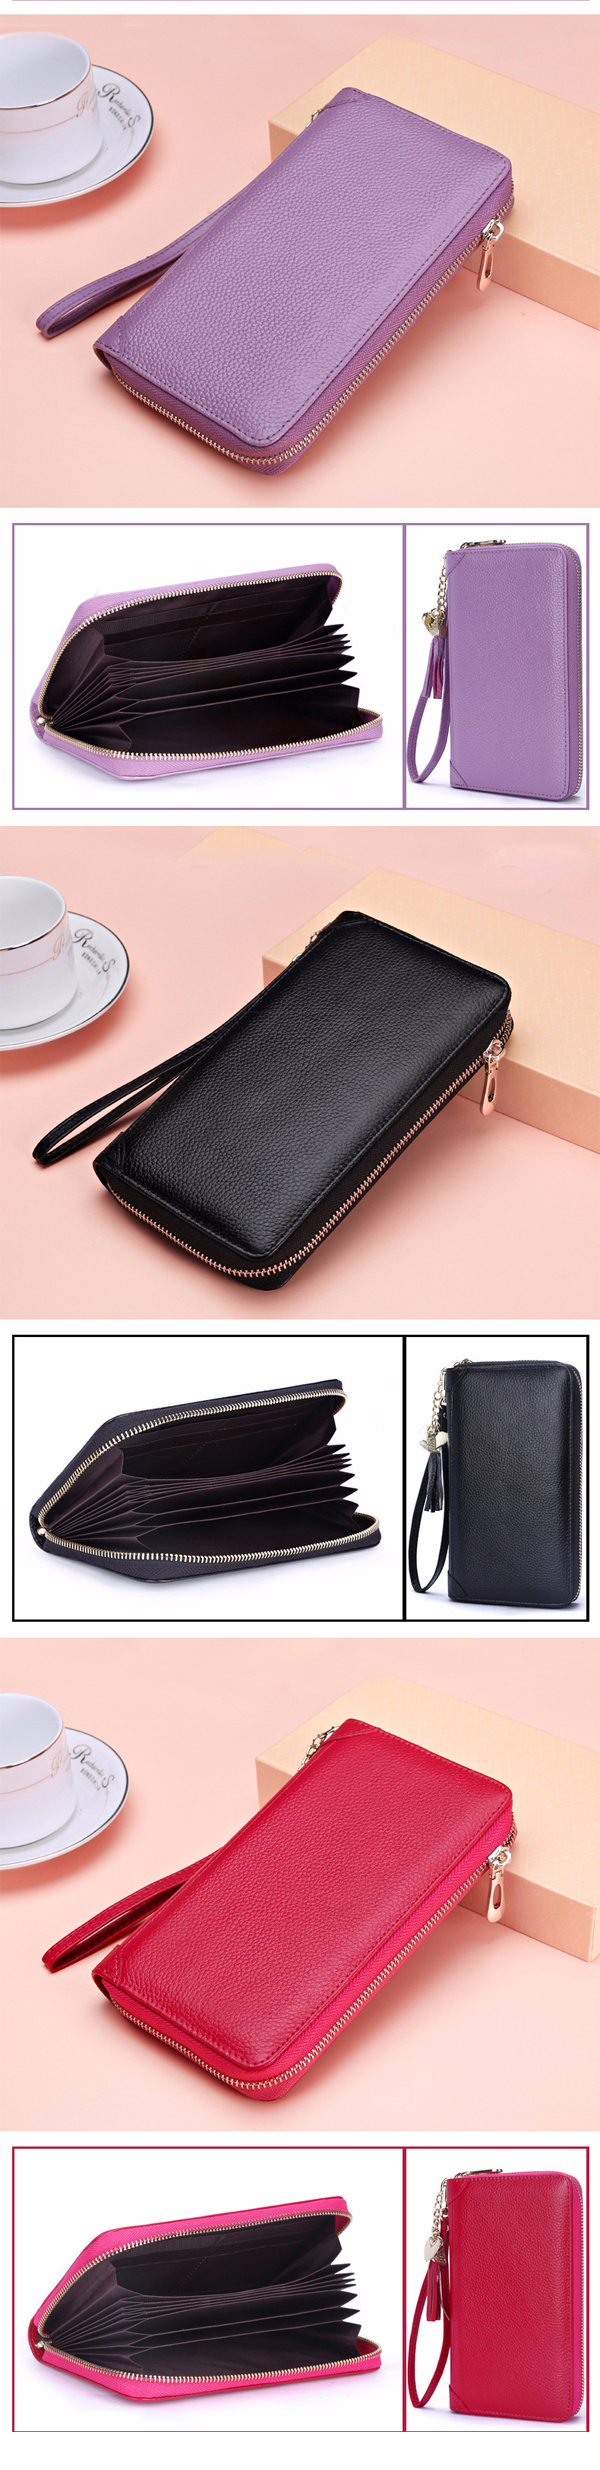 Genuine Leather Korean Tassel Women's Purse